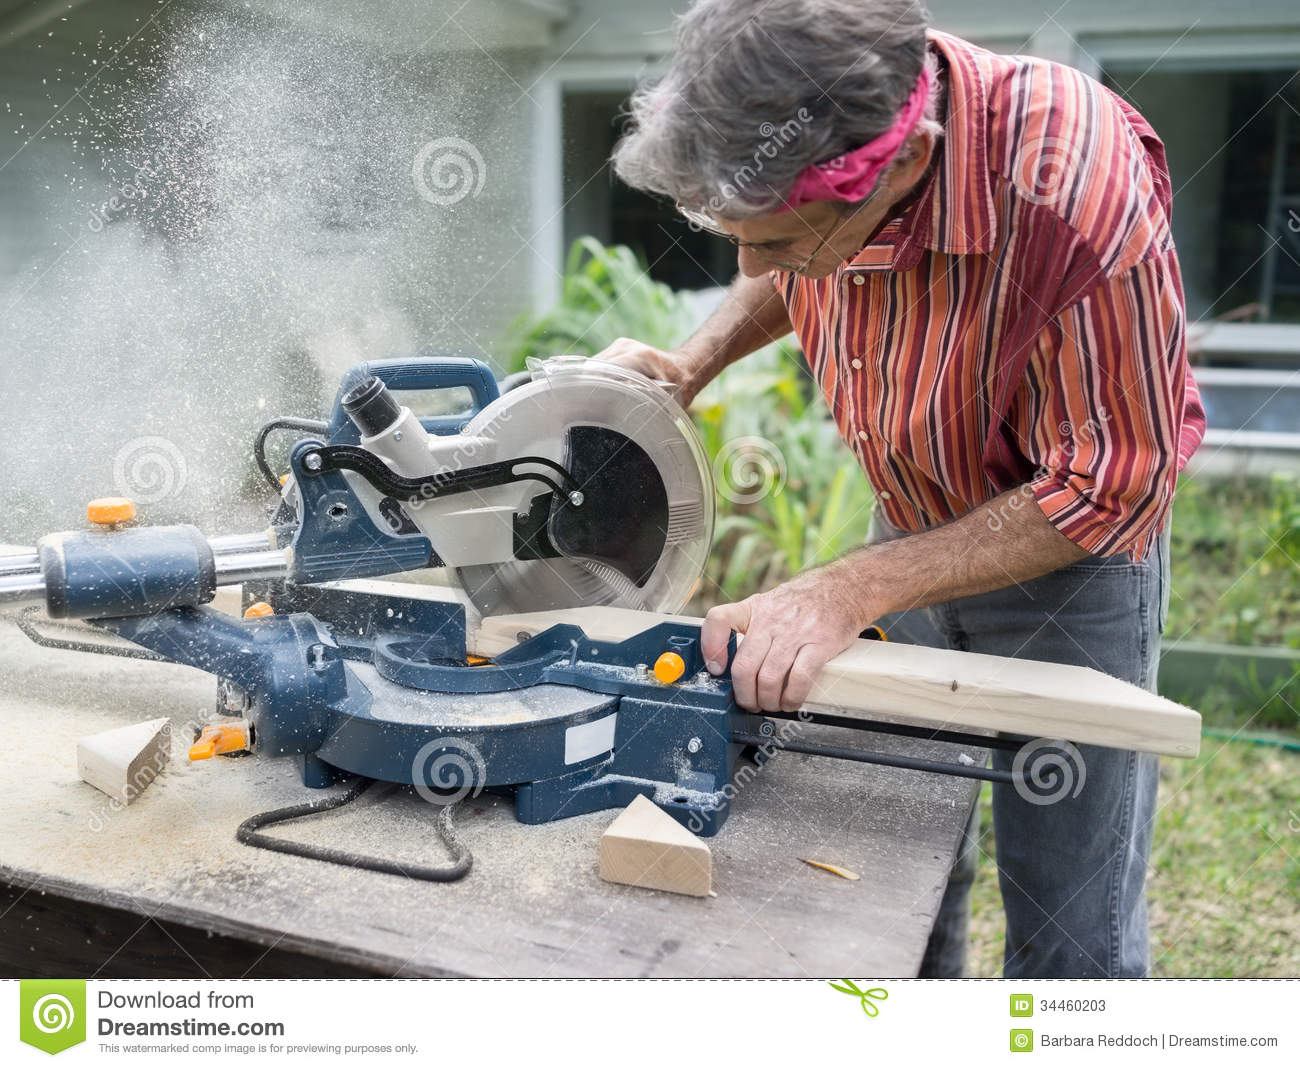 With Sliding Compound Miter Saw Outdoors Sawdust Flying Around